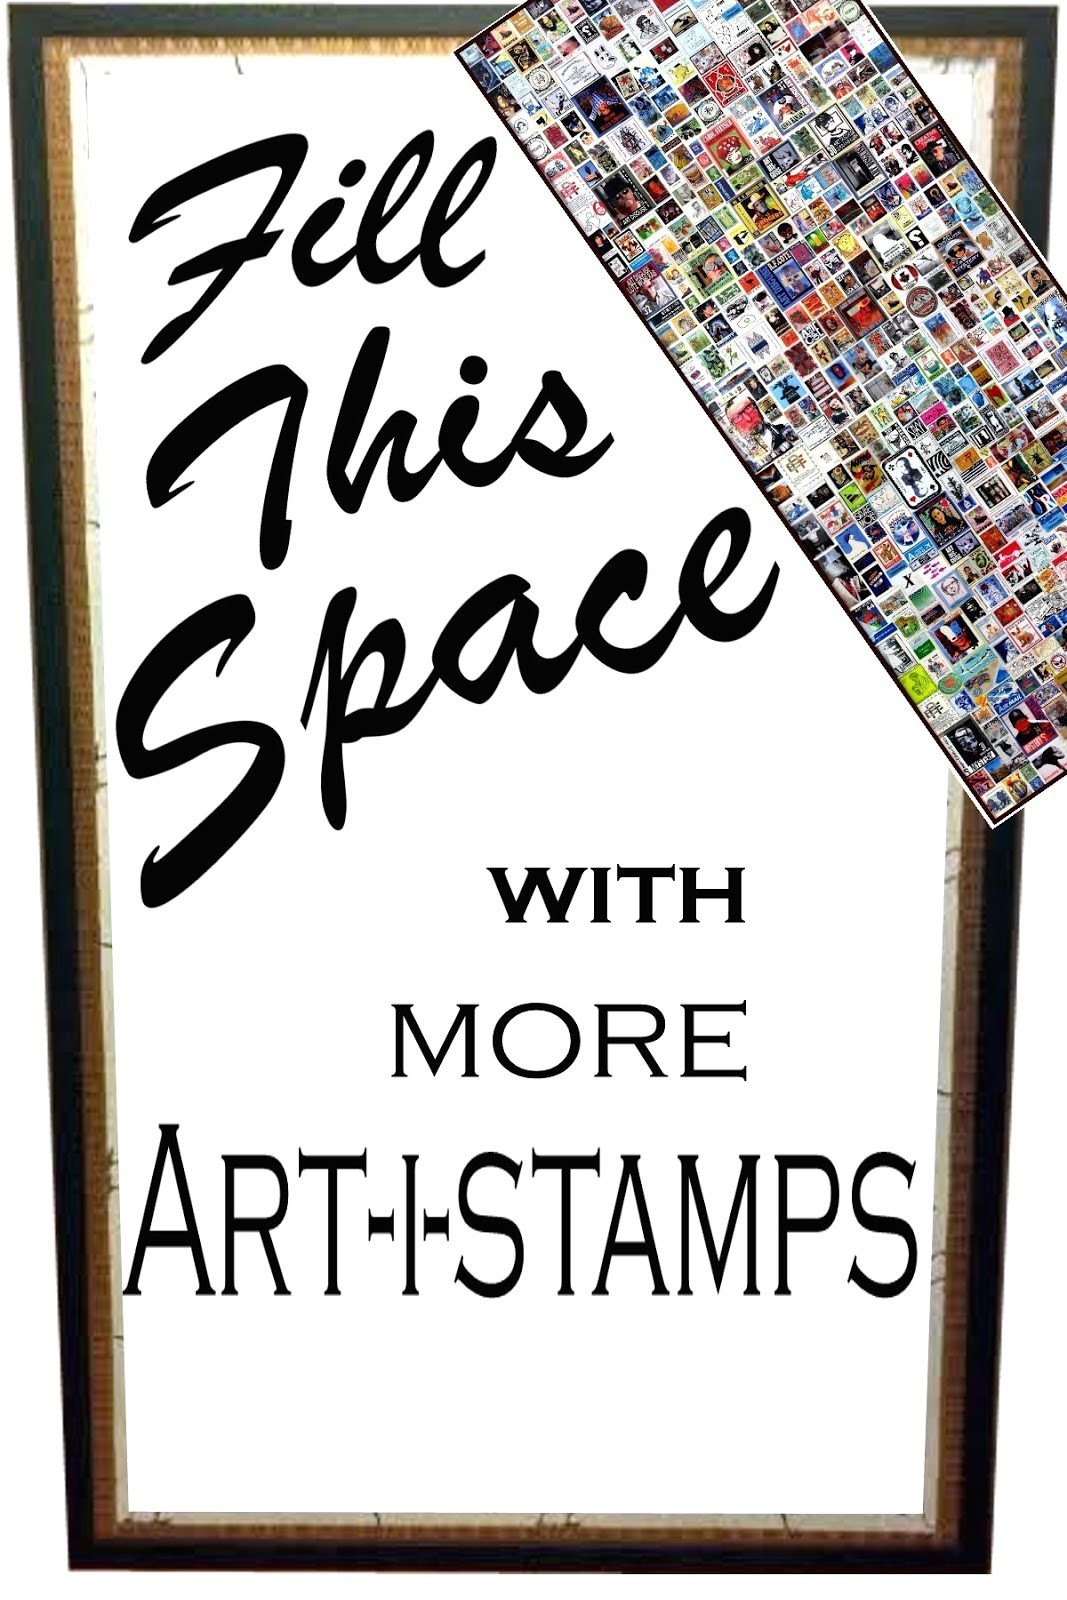 New Call for Art-i-Stamps